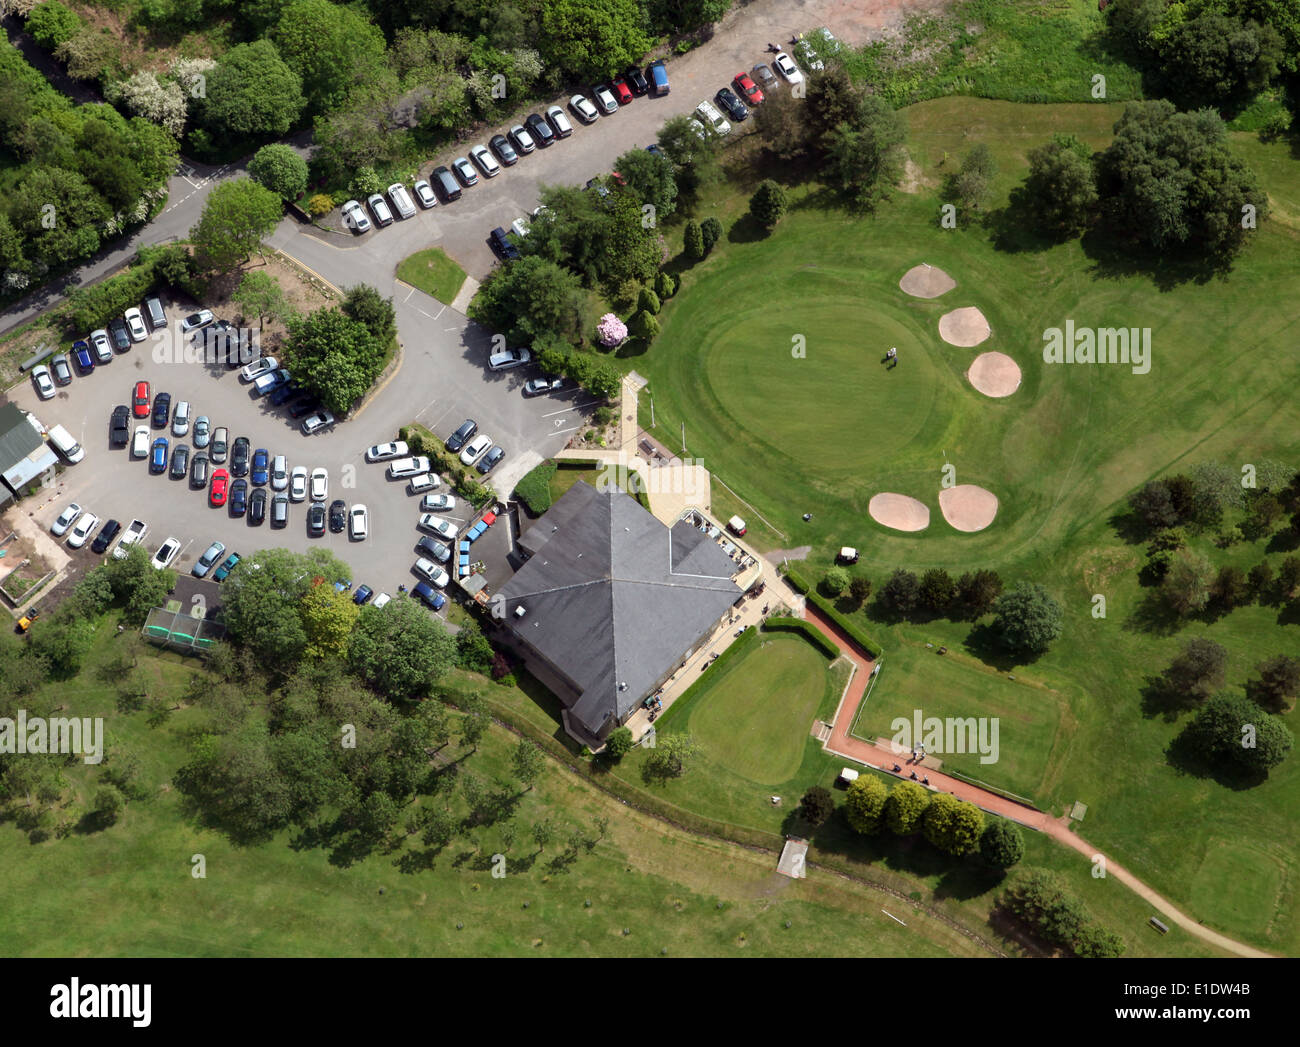 aerial view of Rossendale Golf Club at Haslingden in Lancashire: clubhouse, car-park and 18th green - Stock Image